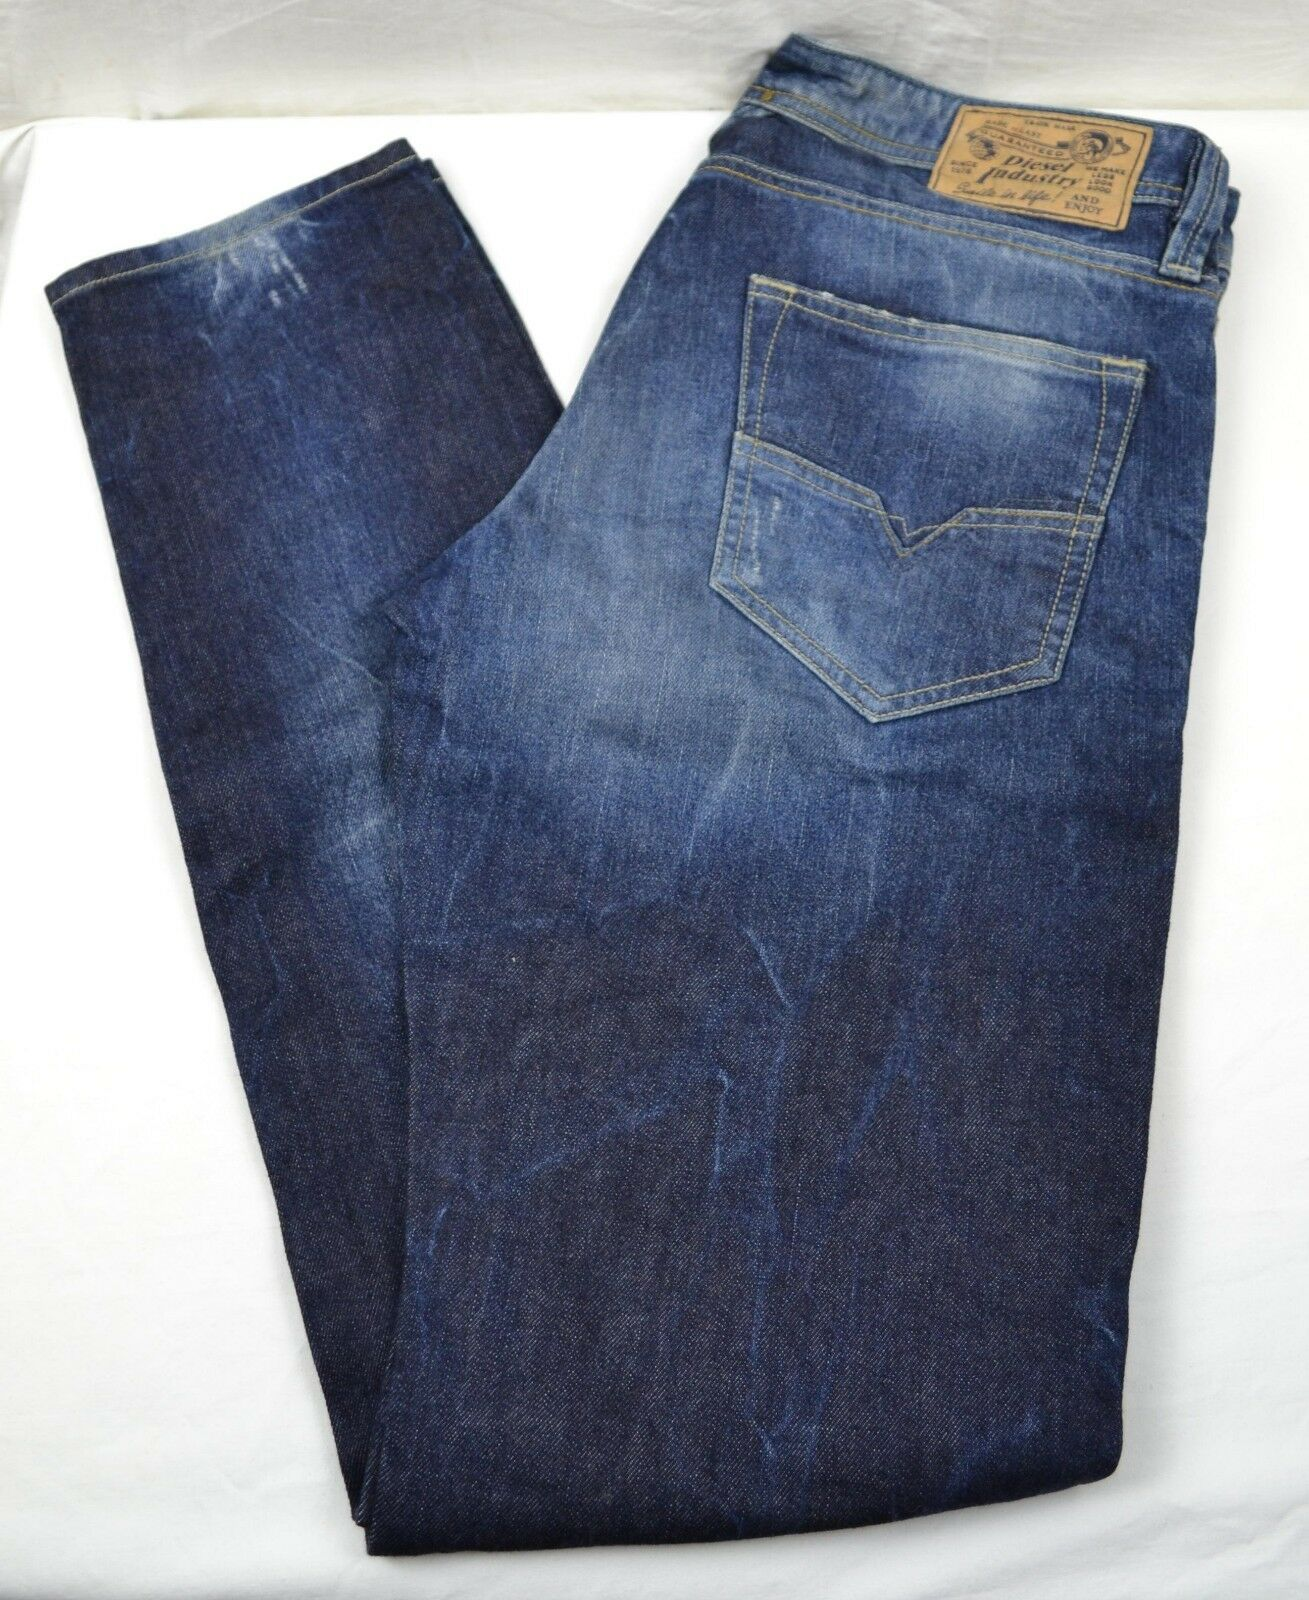 Men's Diesel LARKEE T 33x34 Denim Tapered Jeans wash 008MD W33 L34 33W 34L